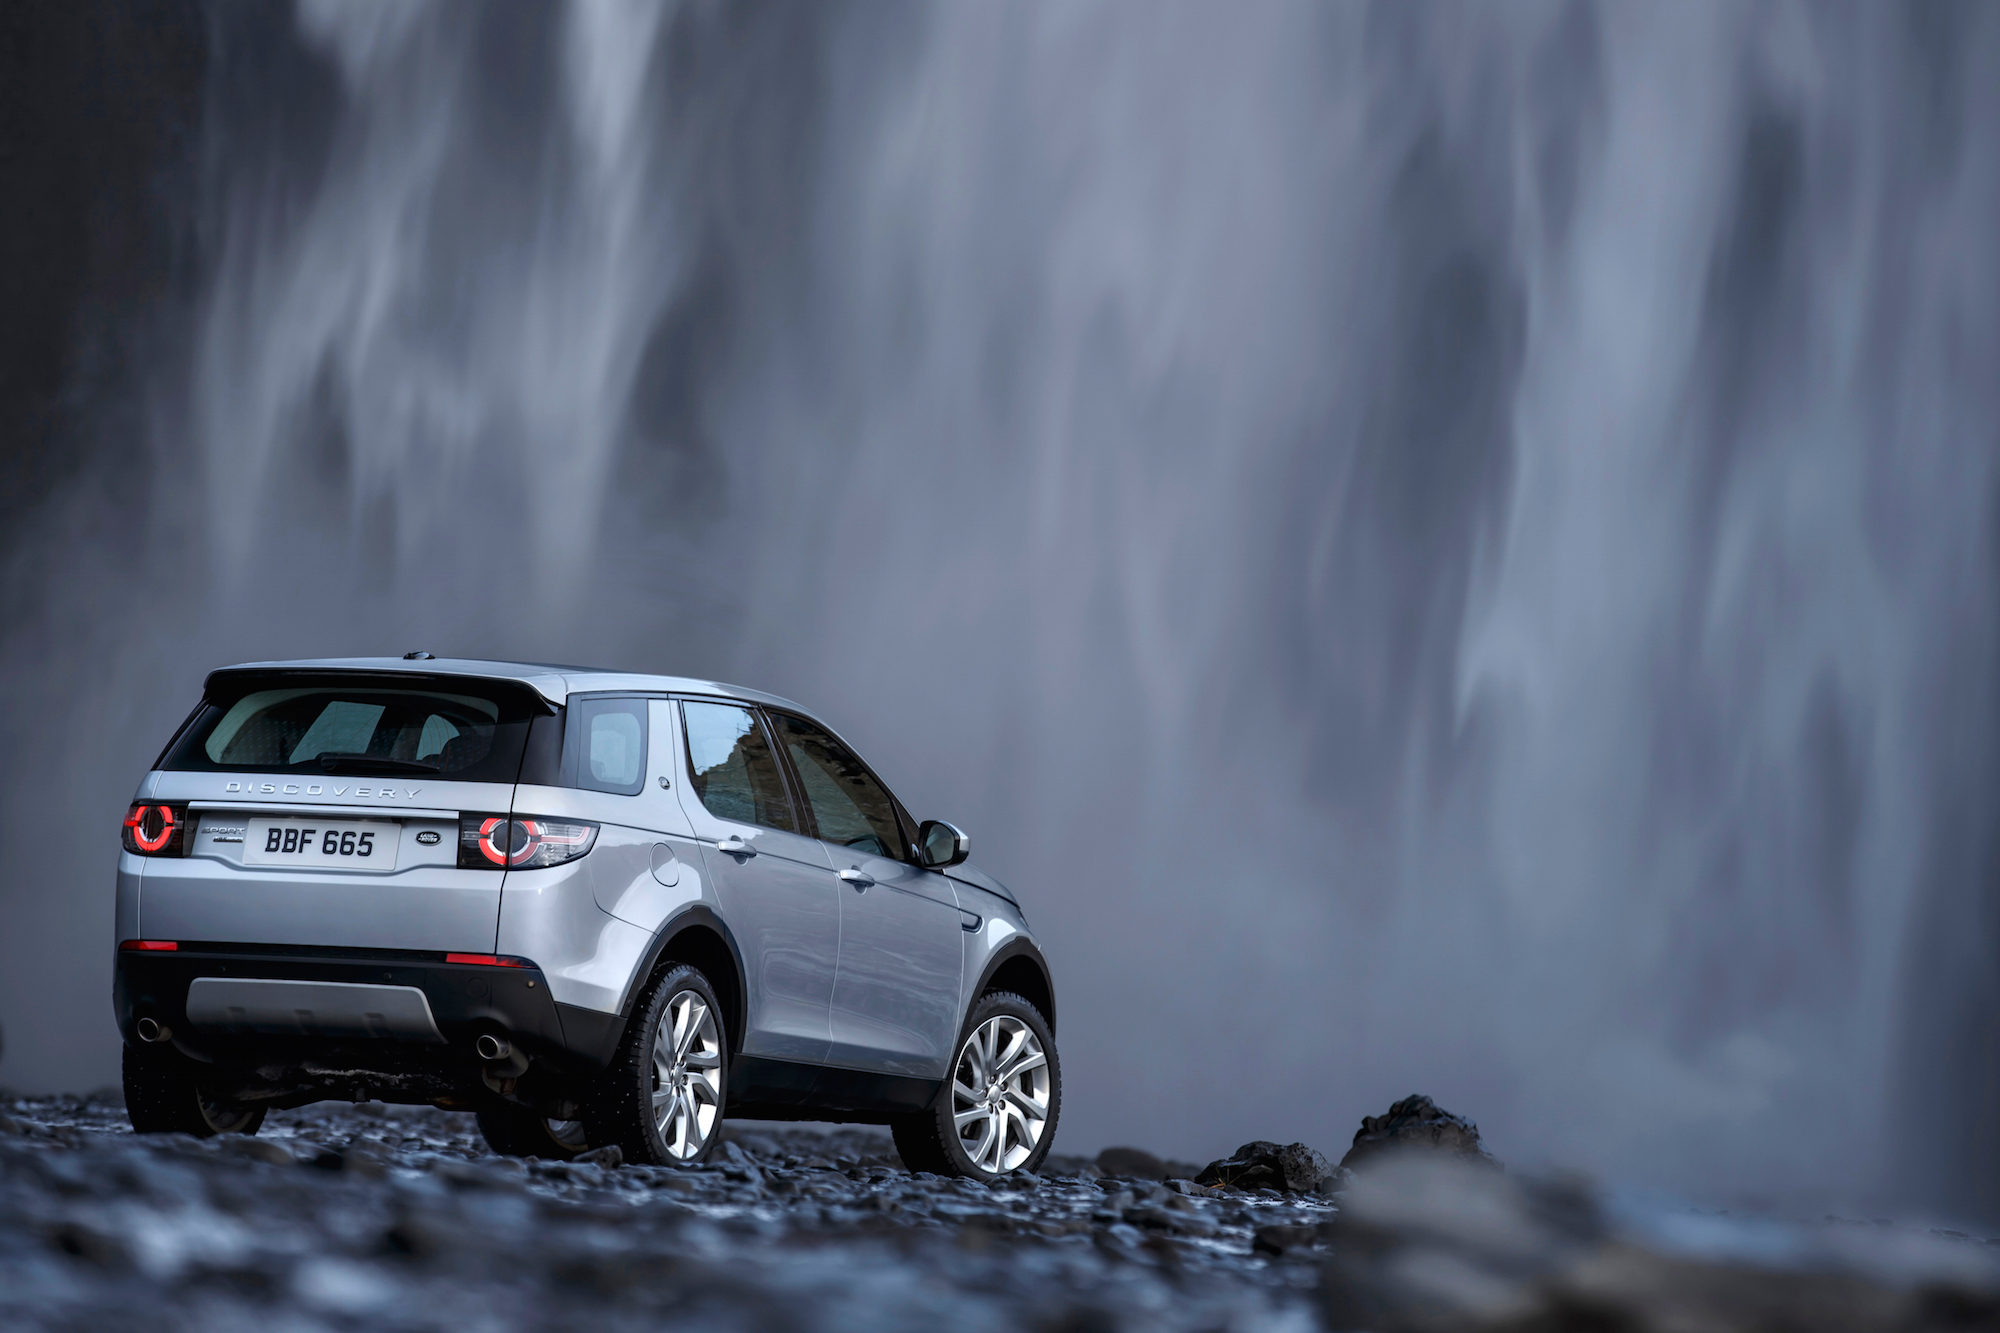 Discovery Sport Wallpaper Android: The Land Rover Discovery Sport